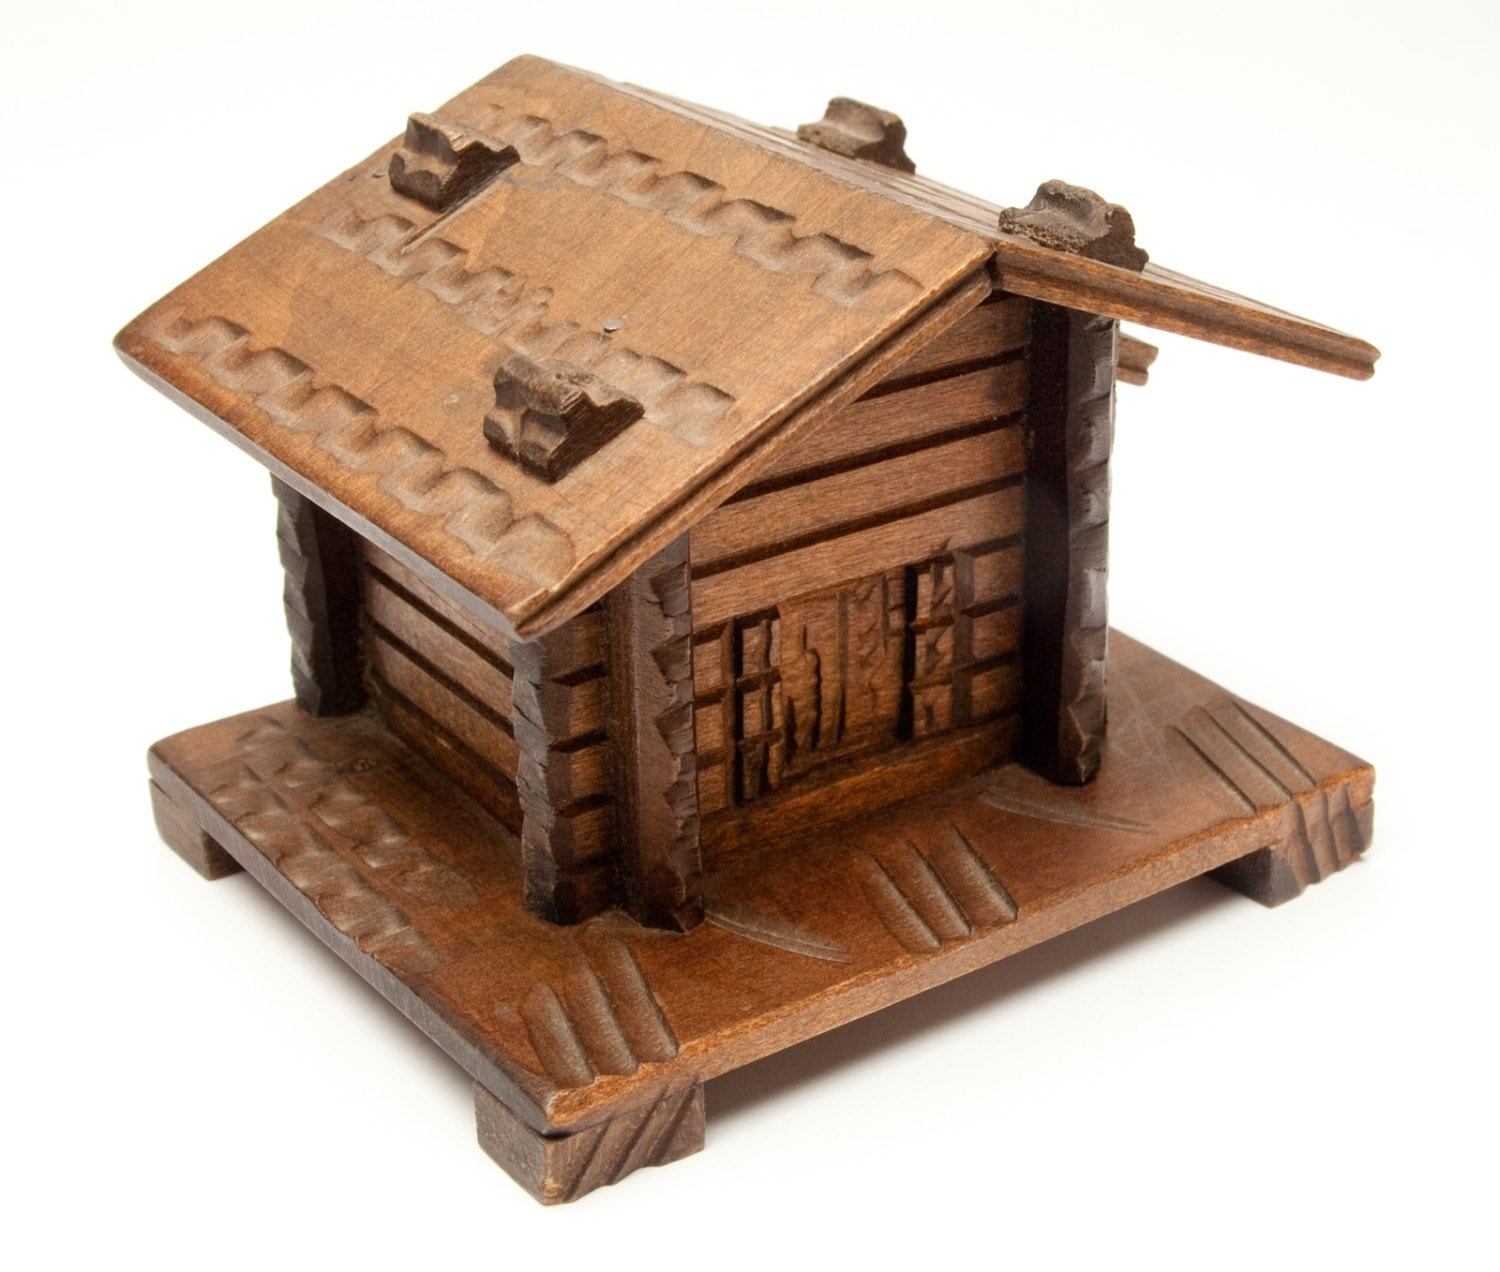 Marvelous photograph of Vintage Log Cabin Savings Bank Puzzle bank secret by wendisattic with #361C10 color and 1500x1272 pixels